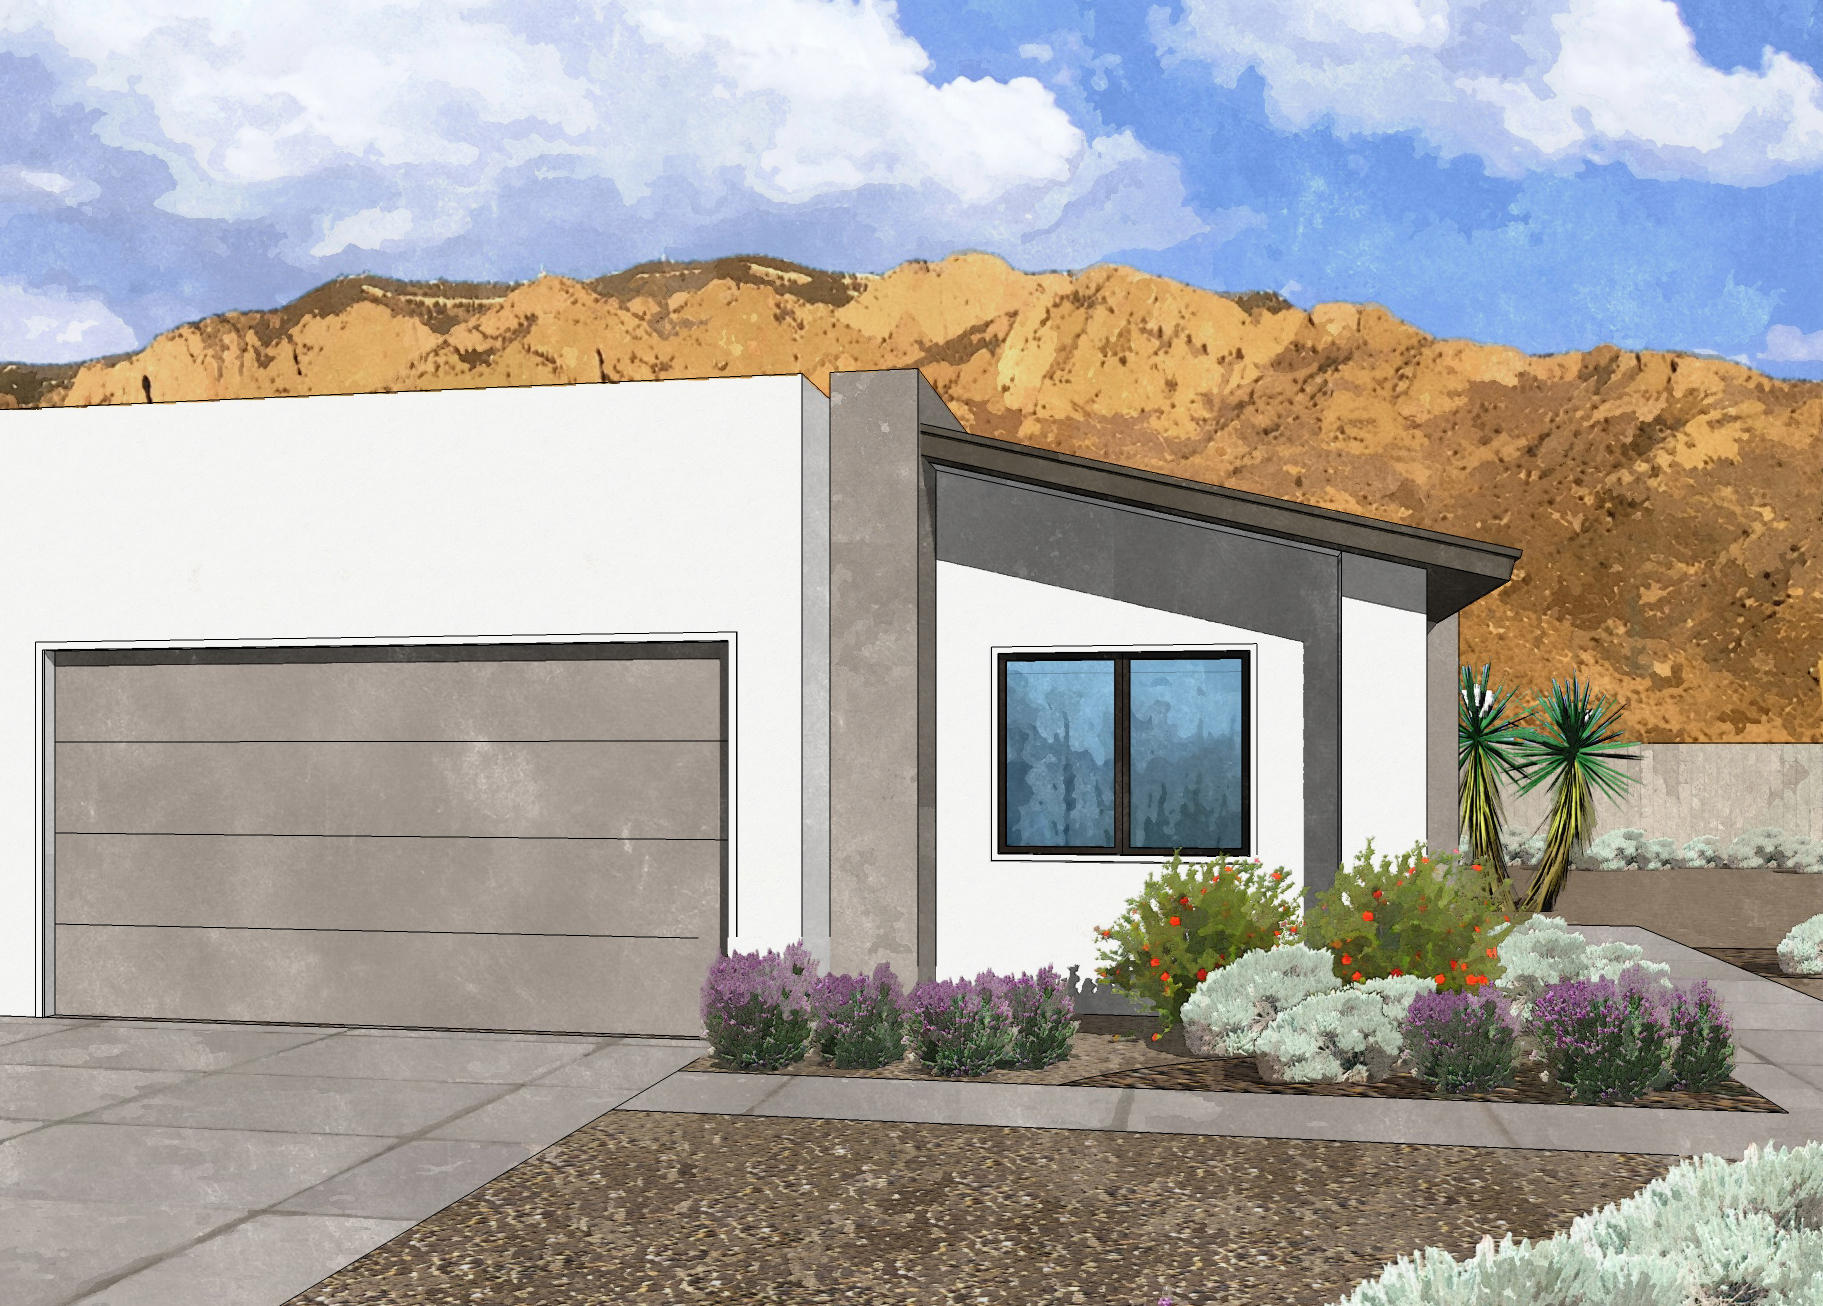 Westway Homes introduces the Rio, 1701 square feet of modern living. An open floor plan with all the best finishes and amenities. The kitchen features Bosch stainless steel appliances, quartz counter tops and an island. The kitchen opens to the formal dining area as well as the great room. The great room features a fireplace opens to a generous covered patio. The master suite is a large with a gorgeous bathroom and large walk-in closet. This home will be ready in June 2021.